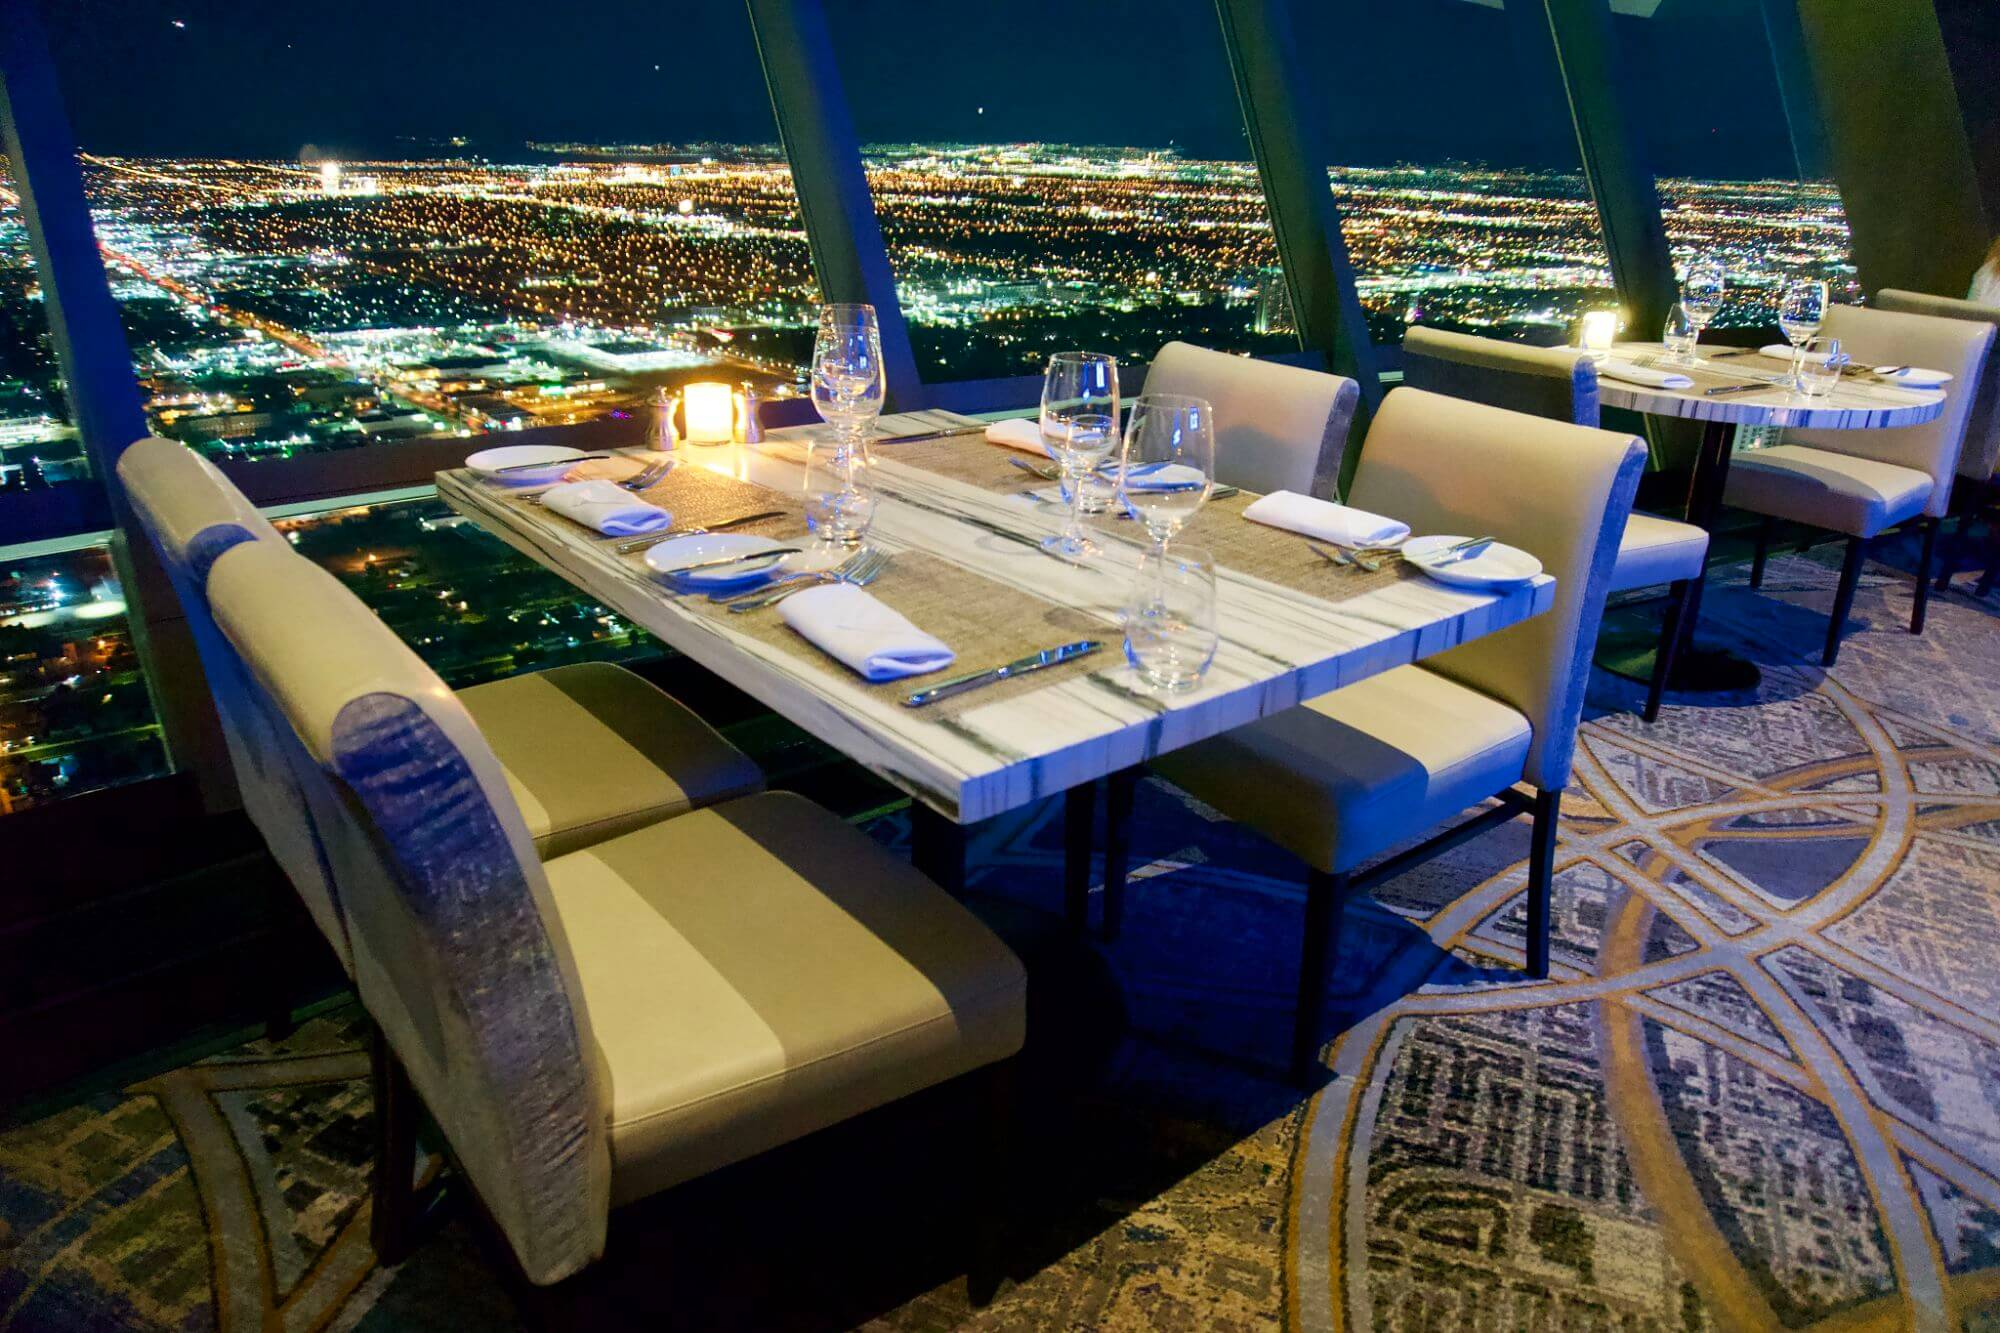 Interior view of the Top Of The World Restaurant at The Strat, Las Vegas, Nevada